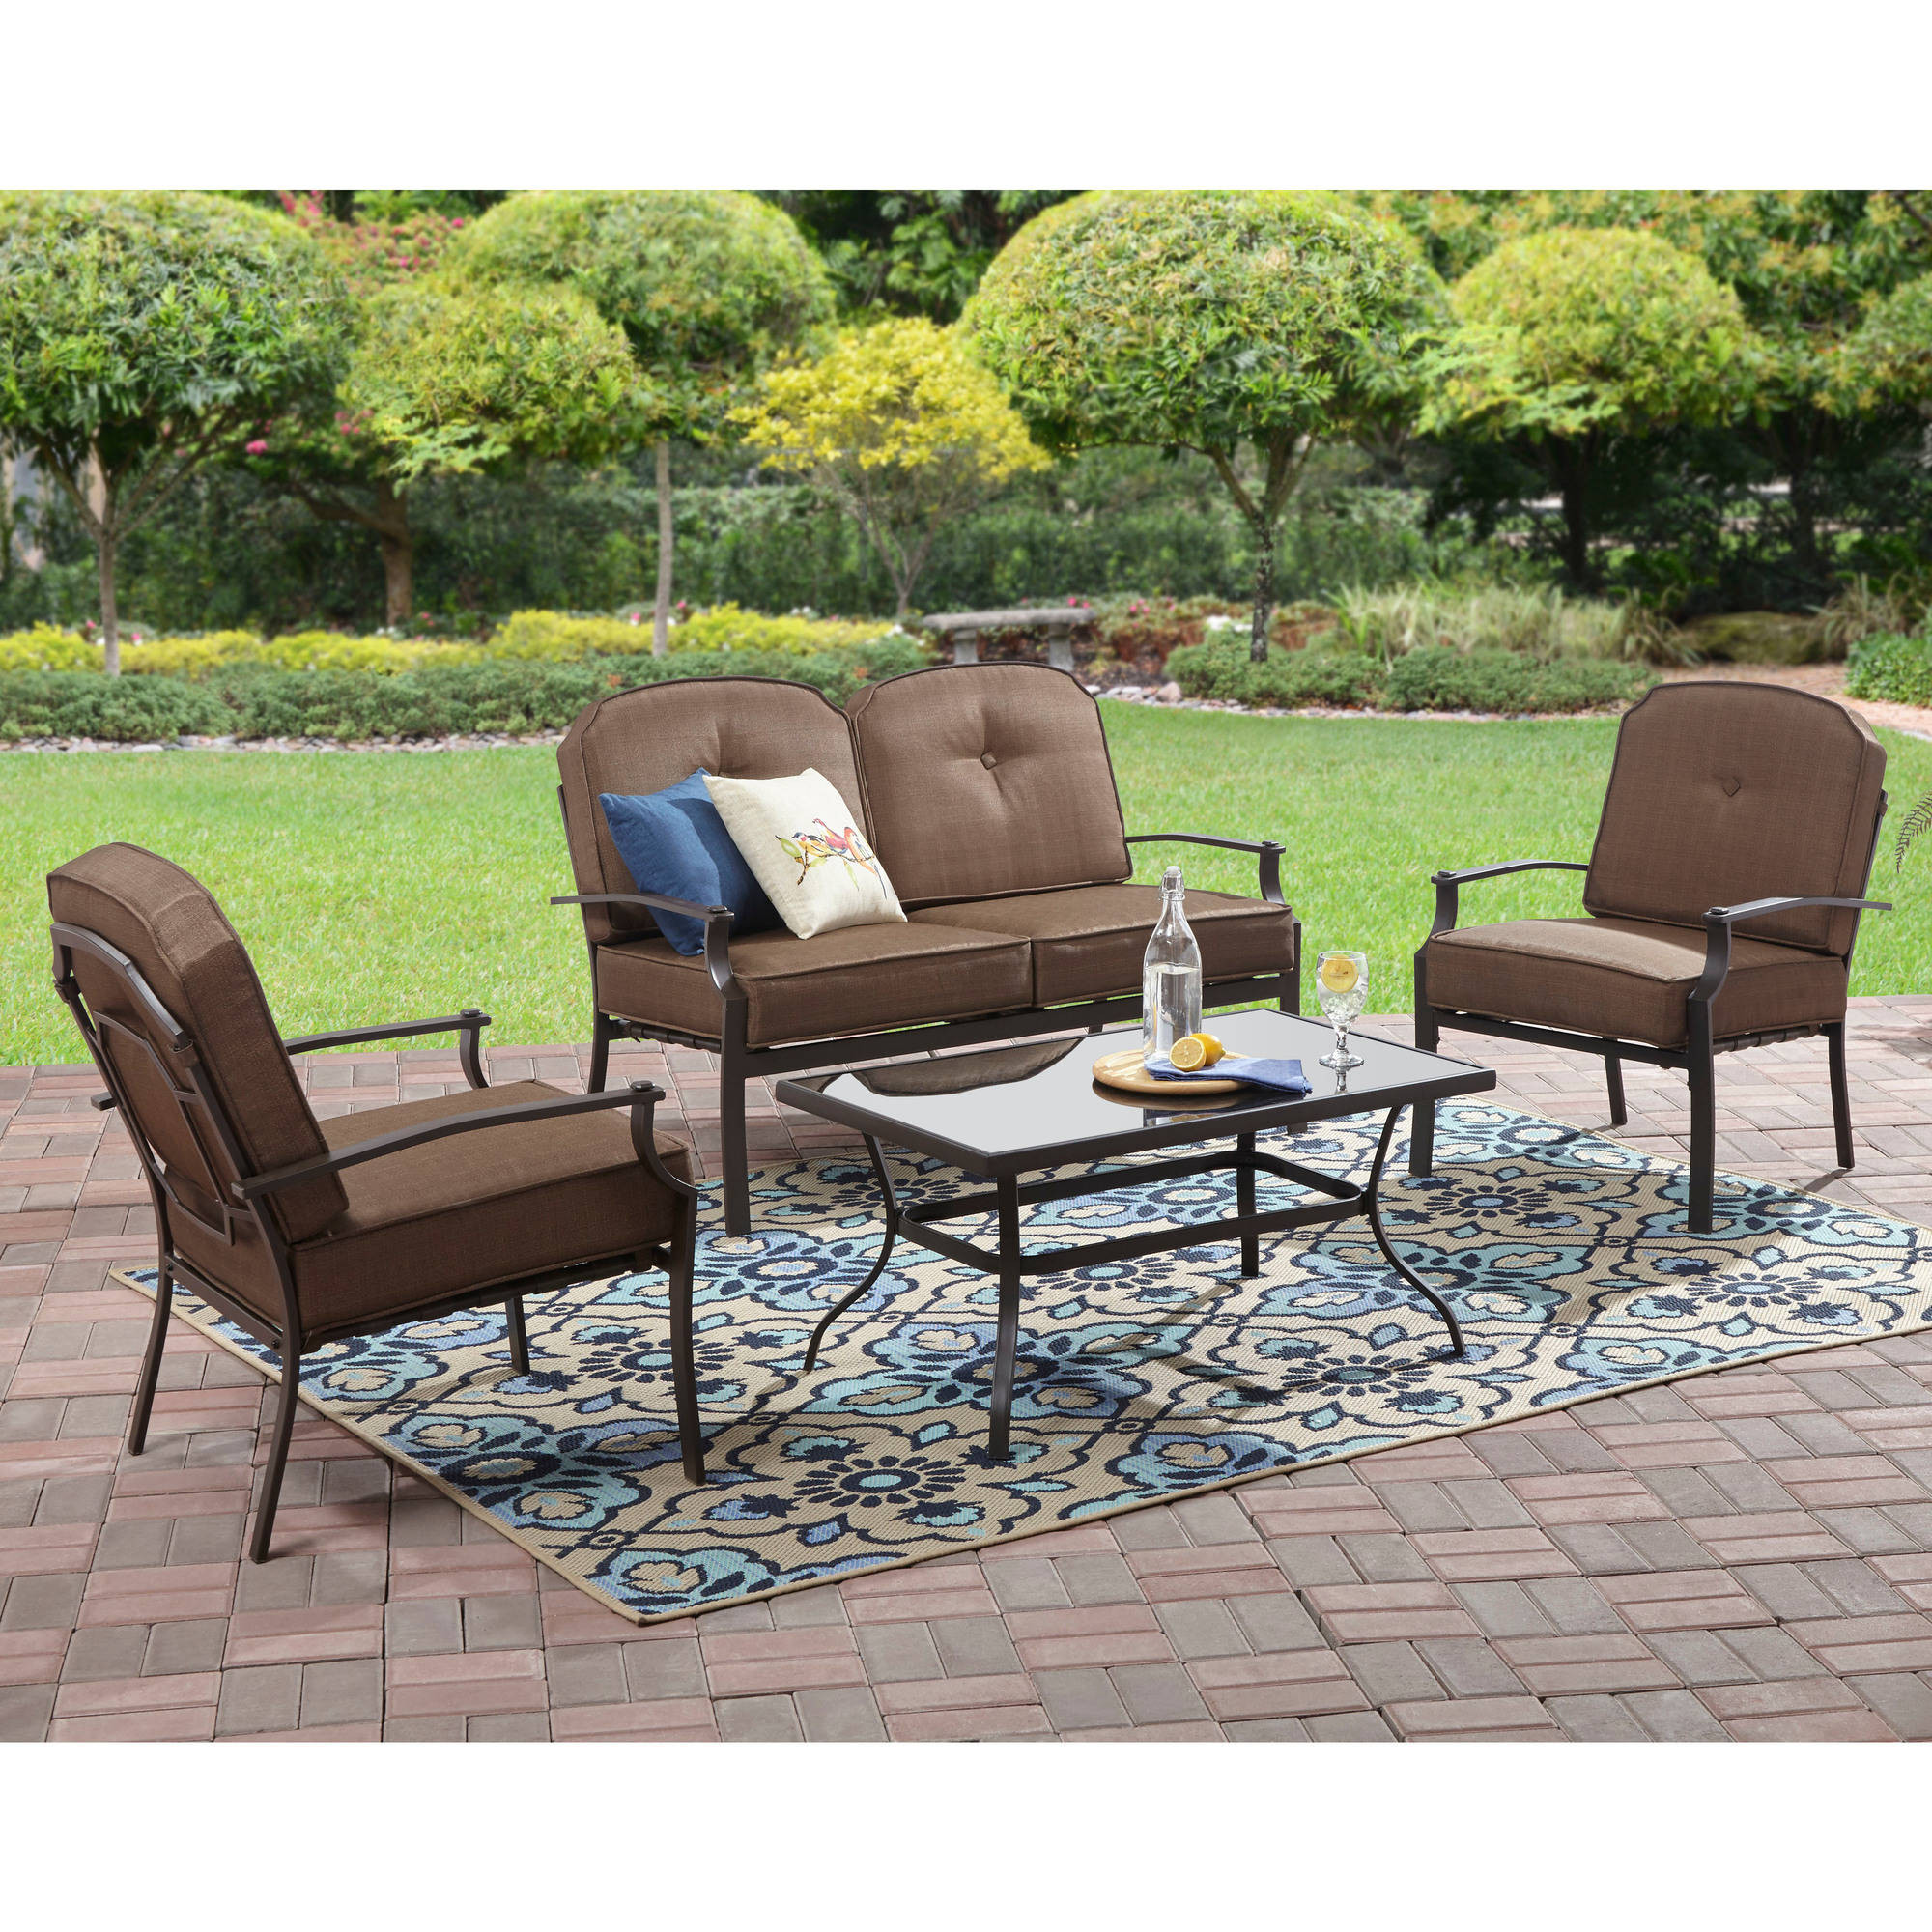 Best ideas about Patio Furniture Walmart . Save or Pin Mainstays Wentworth 3 Piece High Outdoor Bistro Set Seats Now.